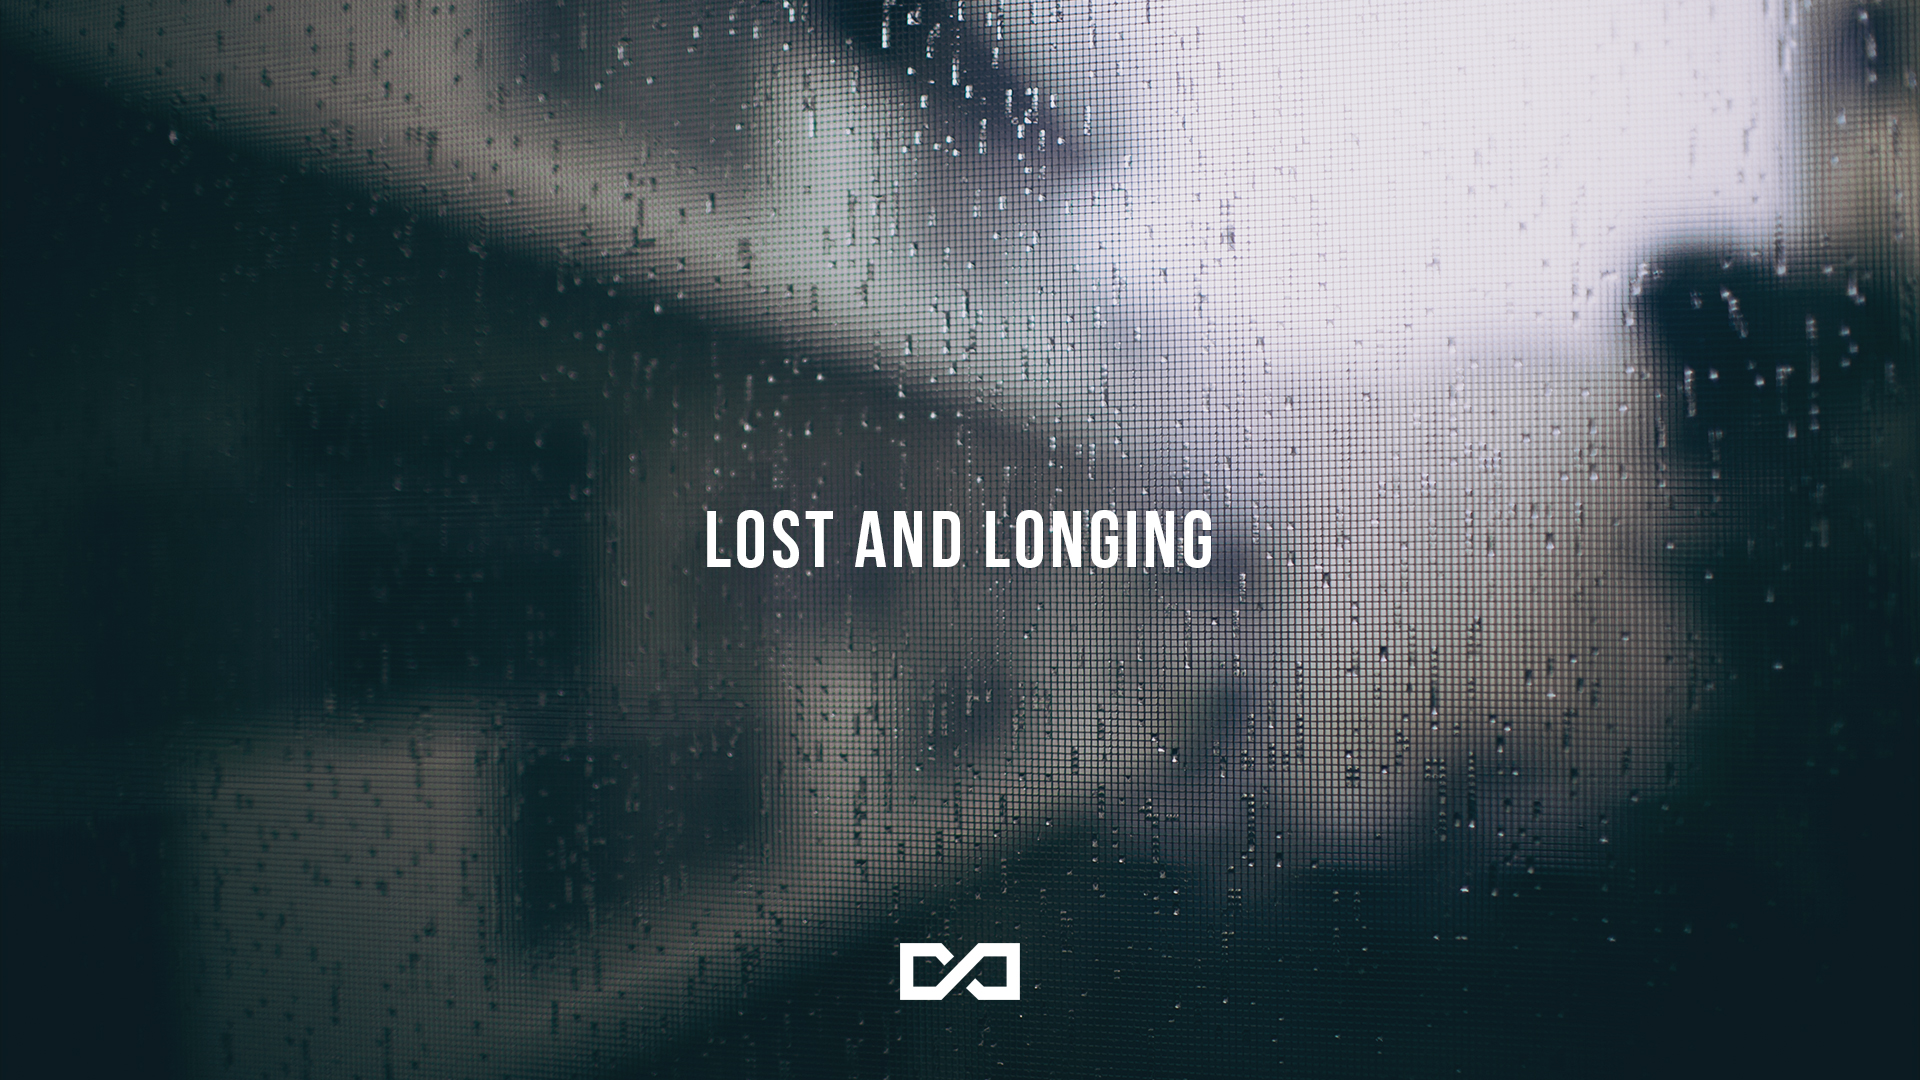 Lost and Longing - Jeremy Lim